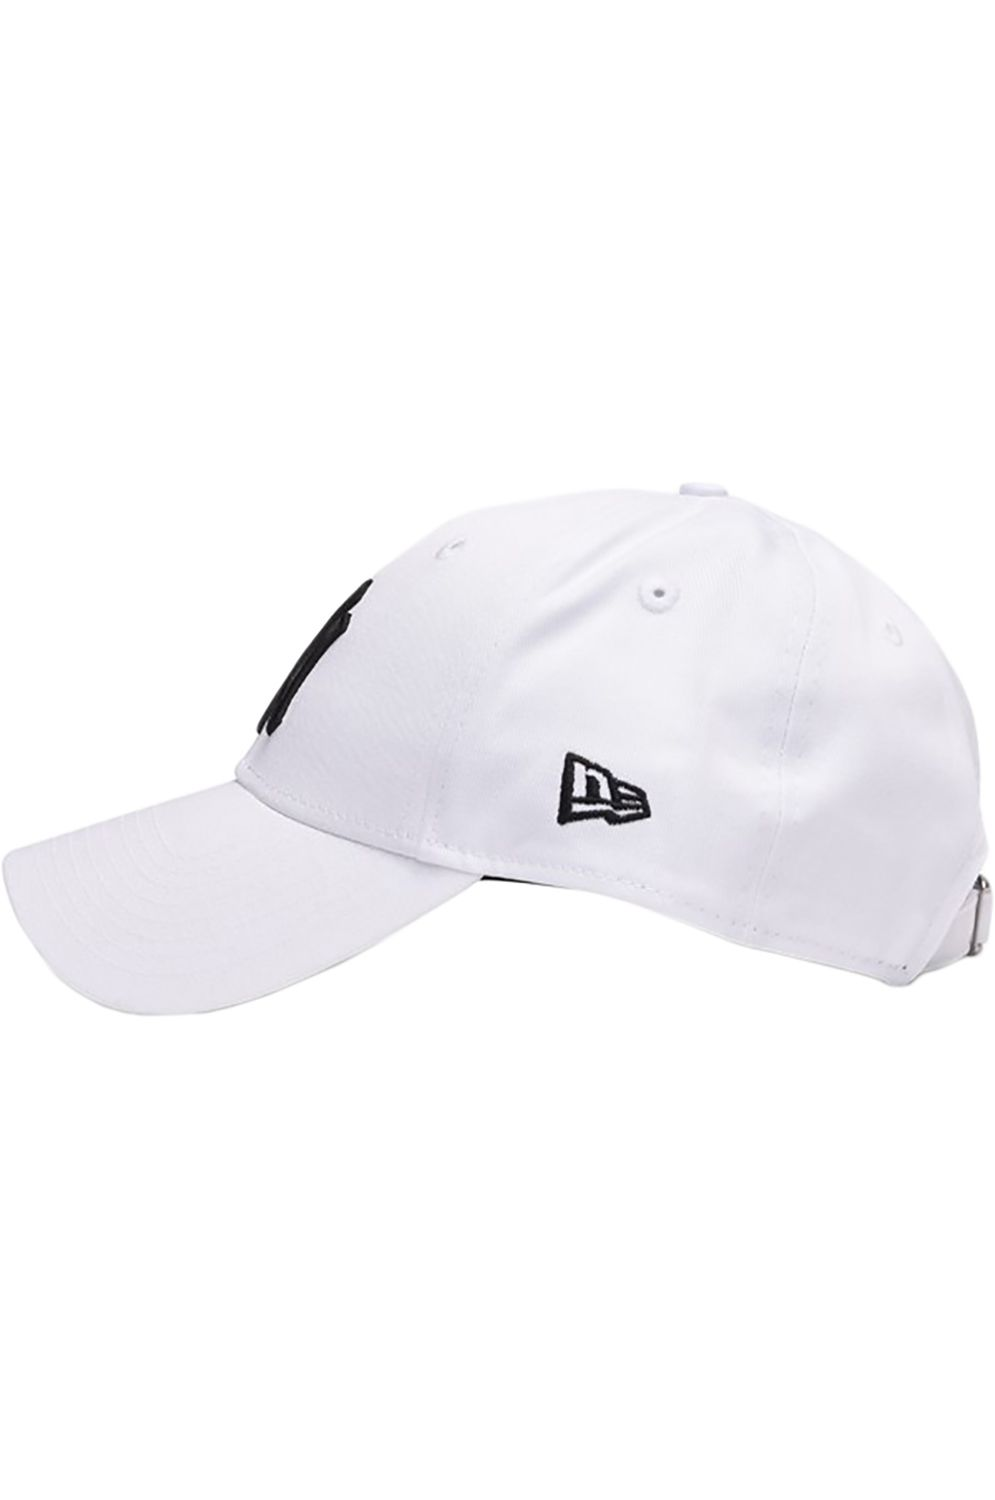 2b6a40022b696 New Era Cap 940 LEAG BASIC NEYYAN NAVY WHITE New York Yankees Unico